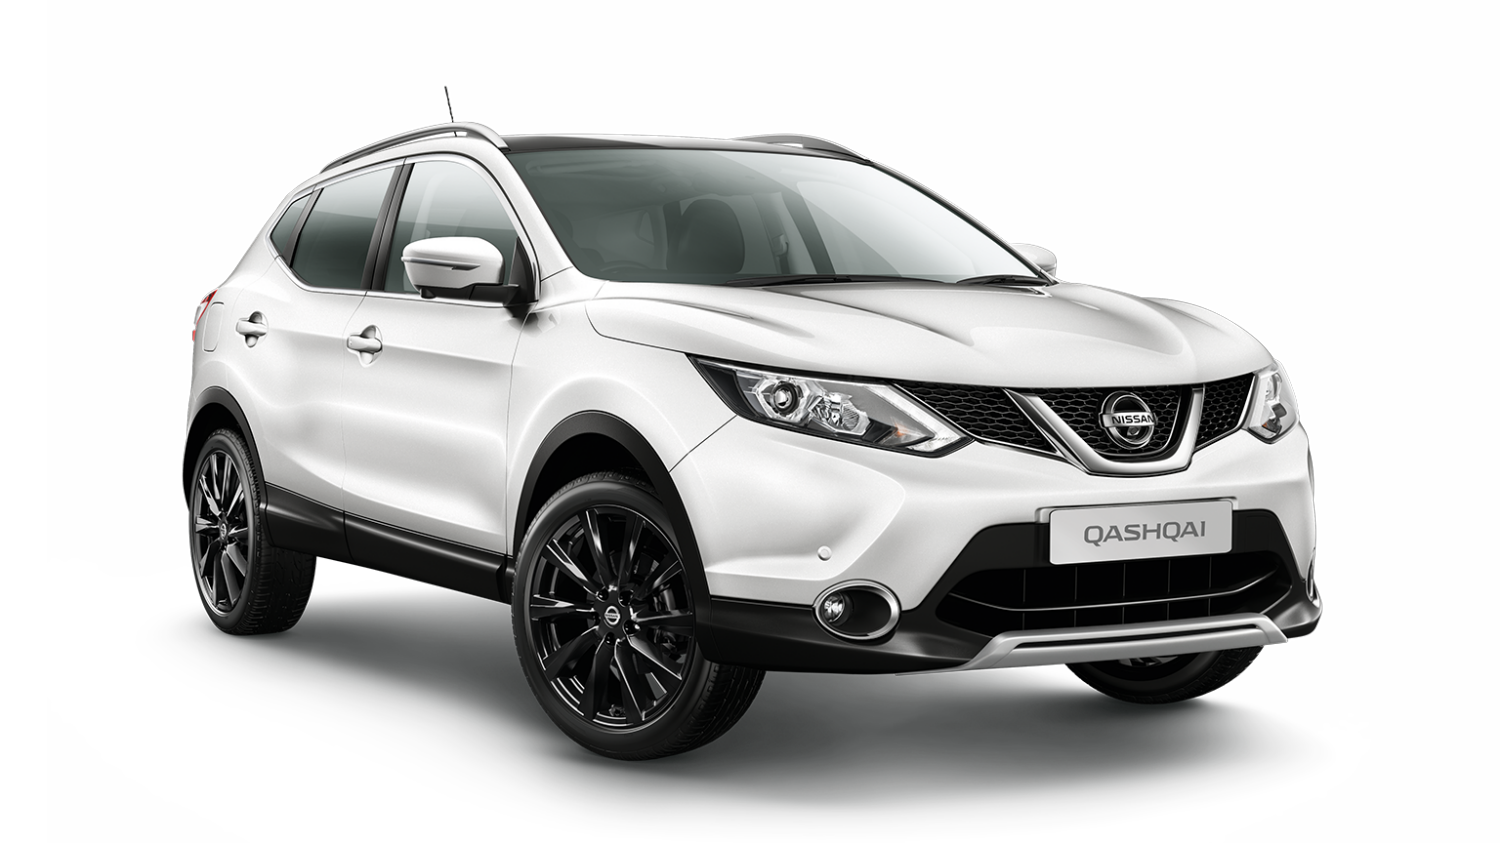 Amazing 2014 Nissan Qashqai Pictures & Backgrounds